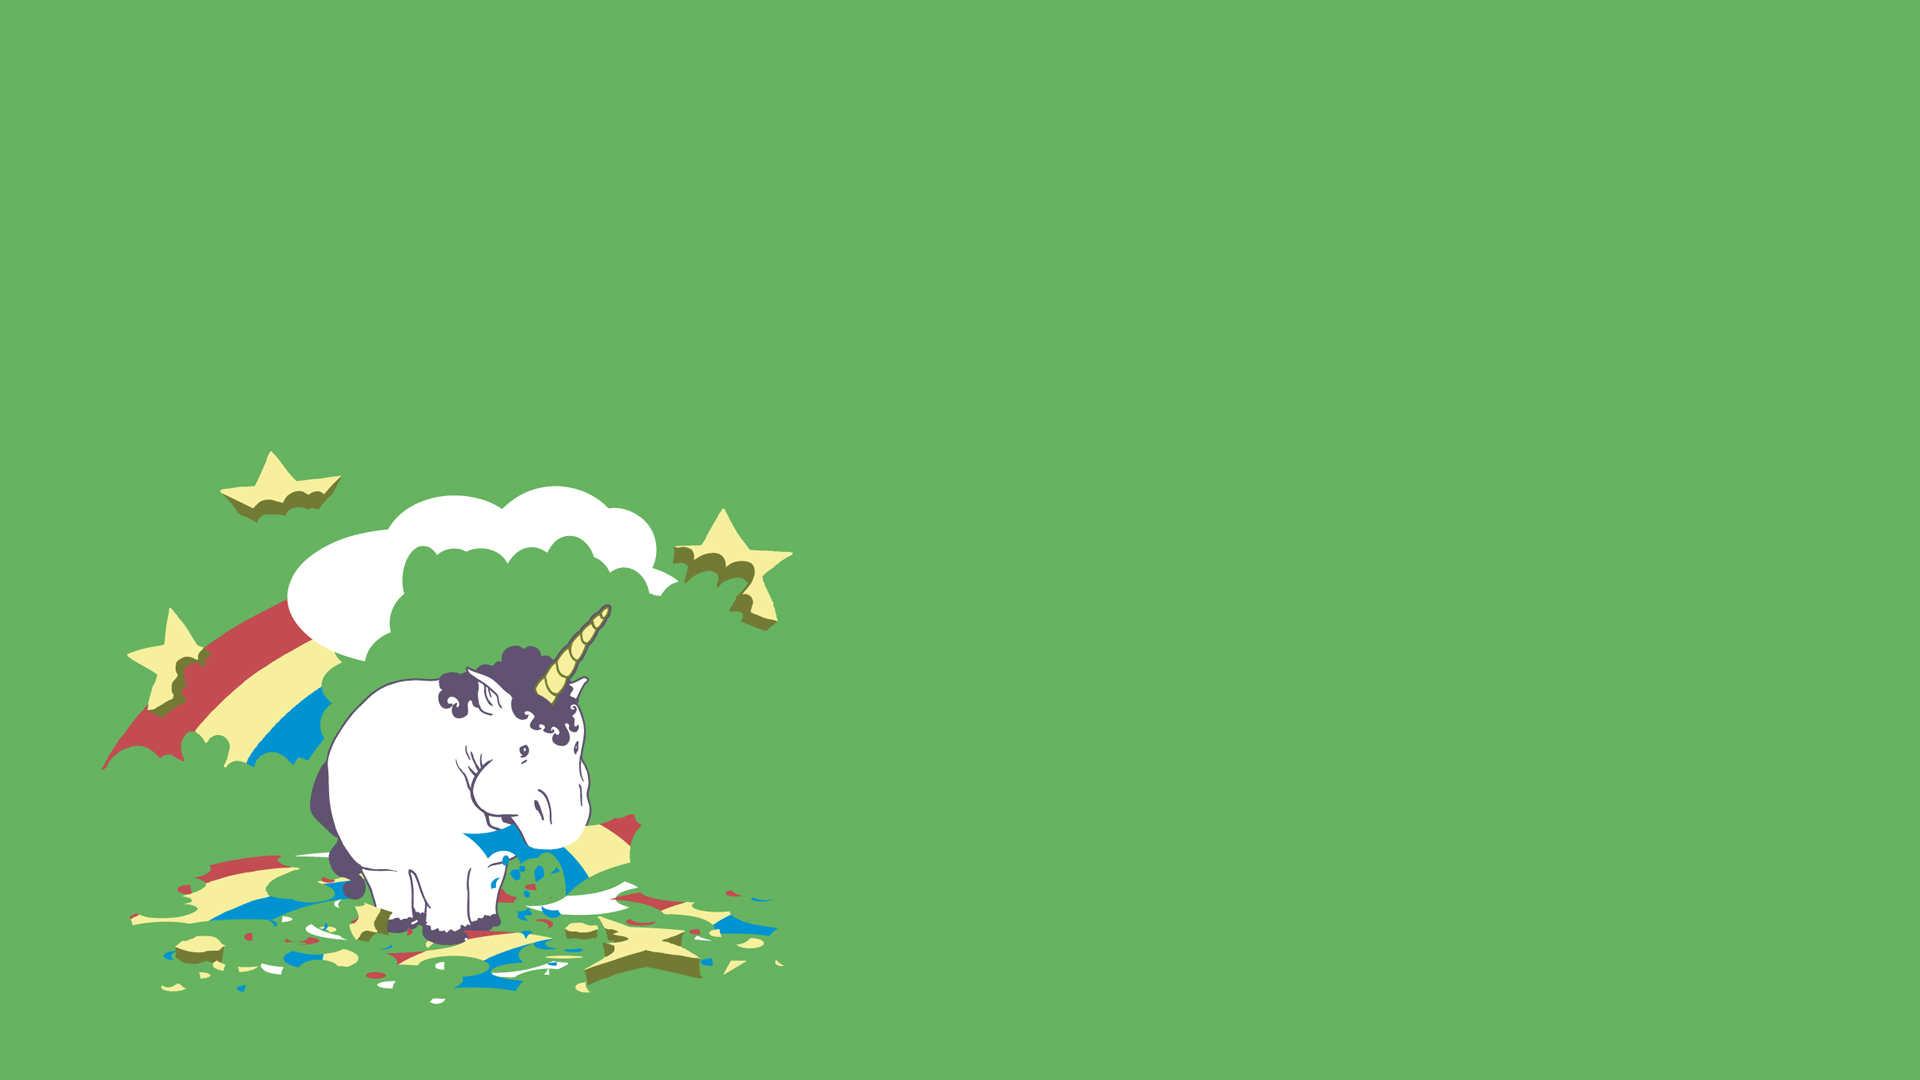 Hd Backgrounds Download >> Minimalistic humor unicorns funny simple wallpaper | 1920x1080 | 73402 | WallpaperUP